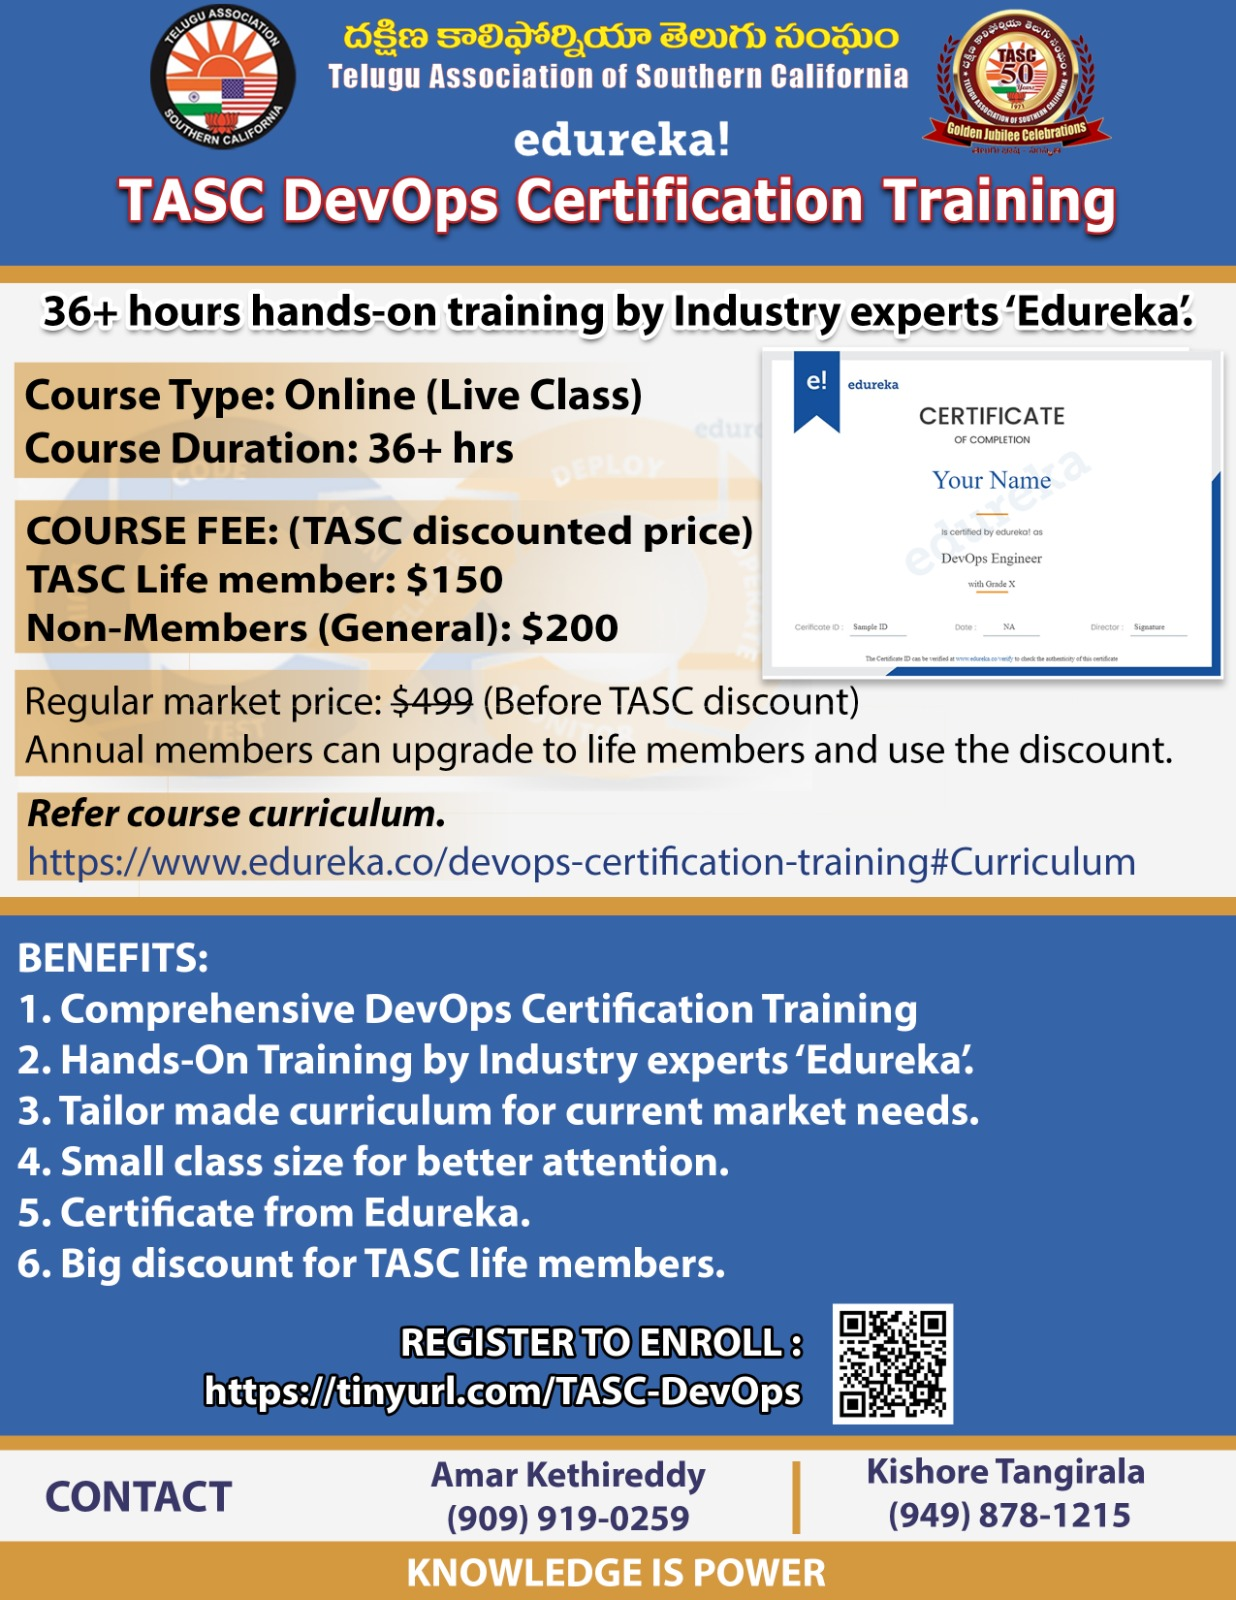 TASC CAREER ADVANCEMENT PROGRAM CERTIFIED DevOps Online Training